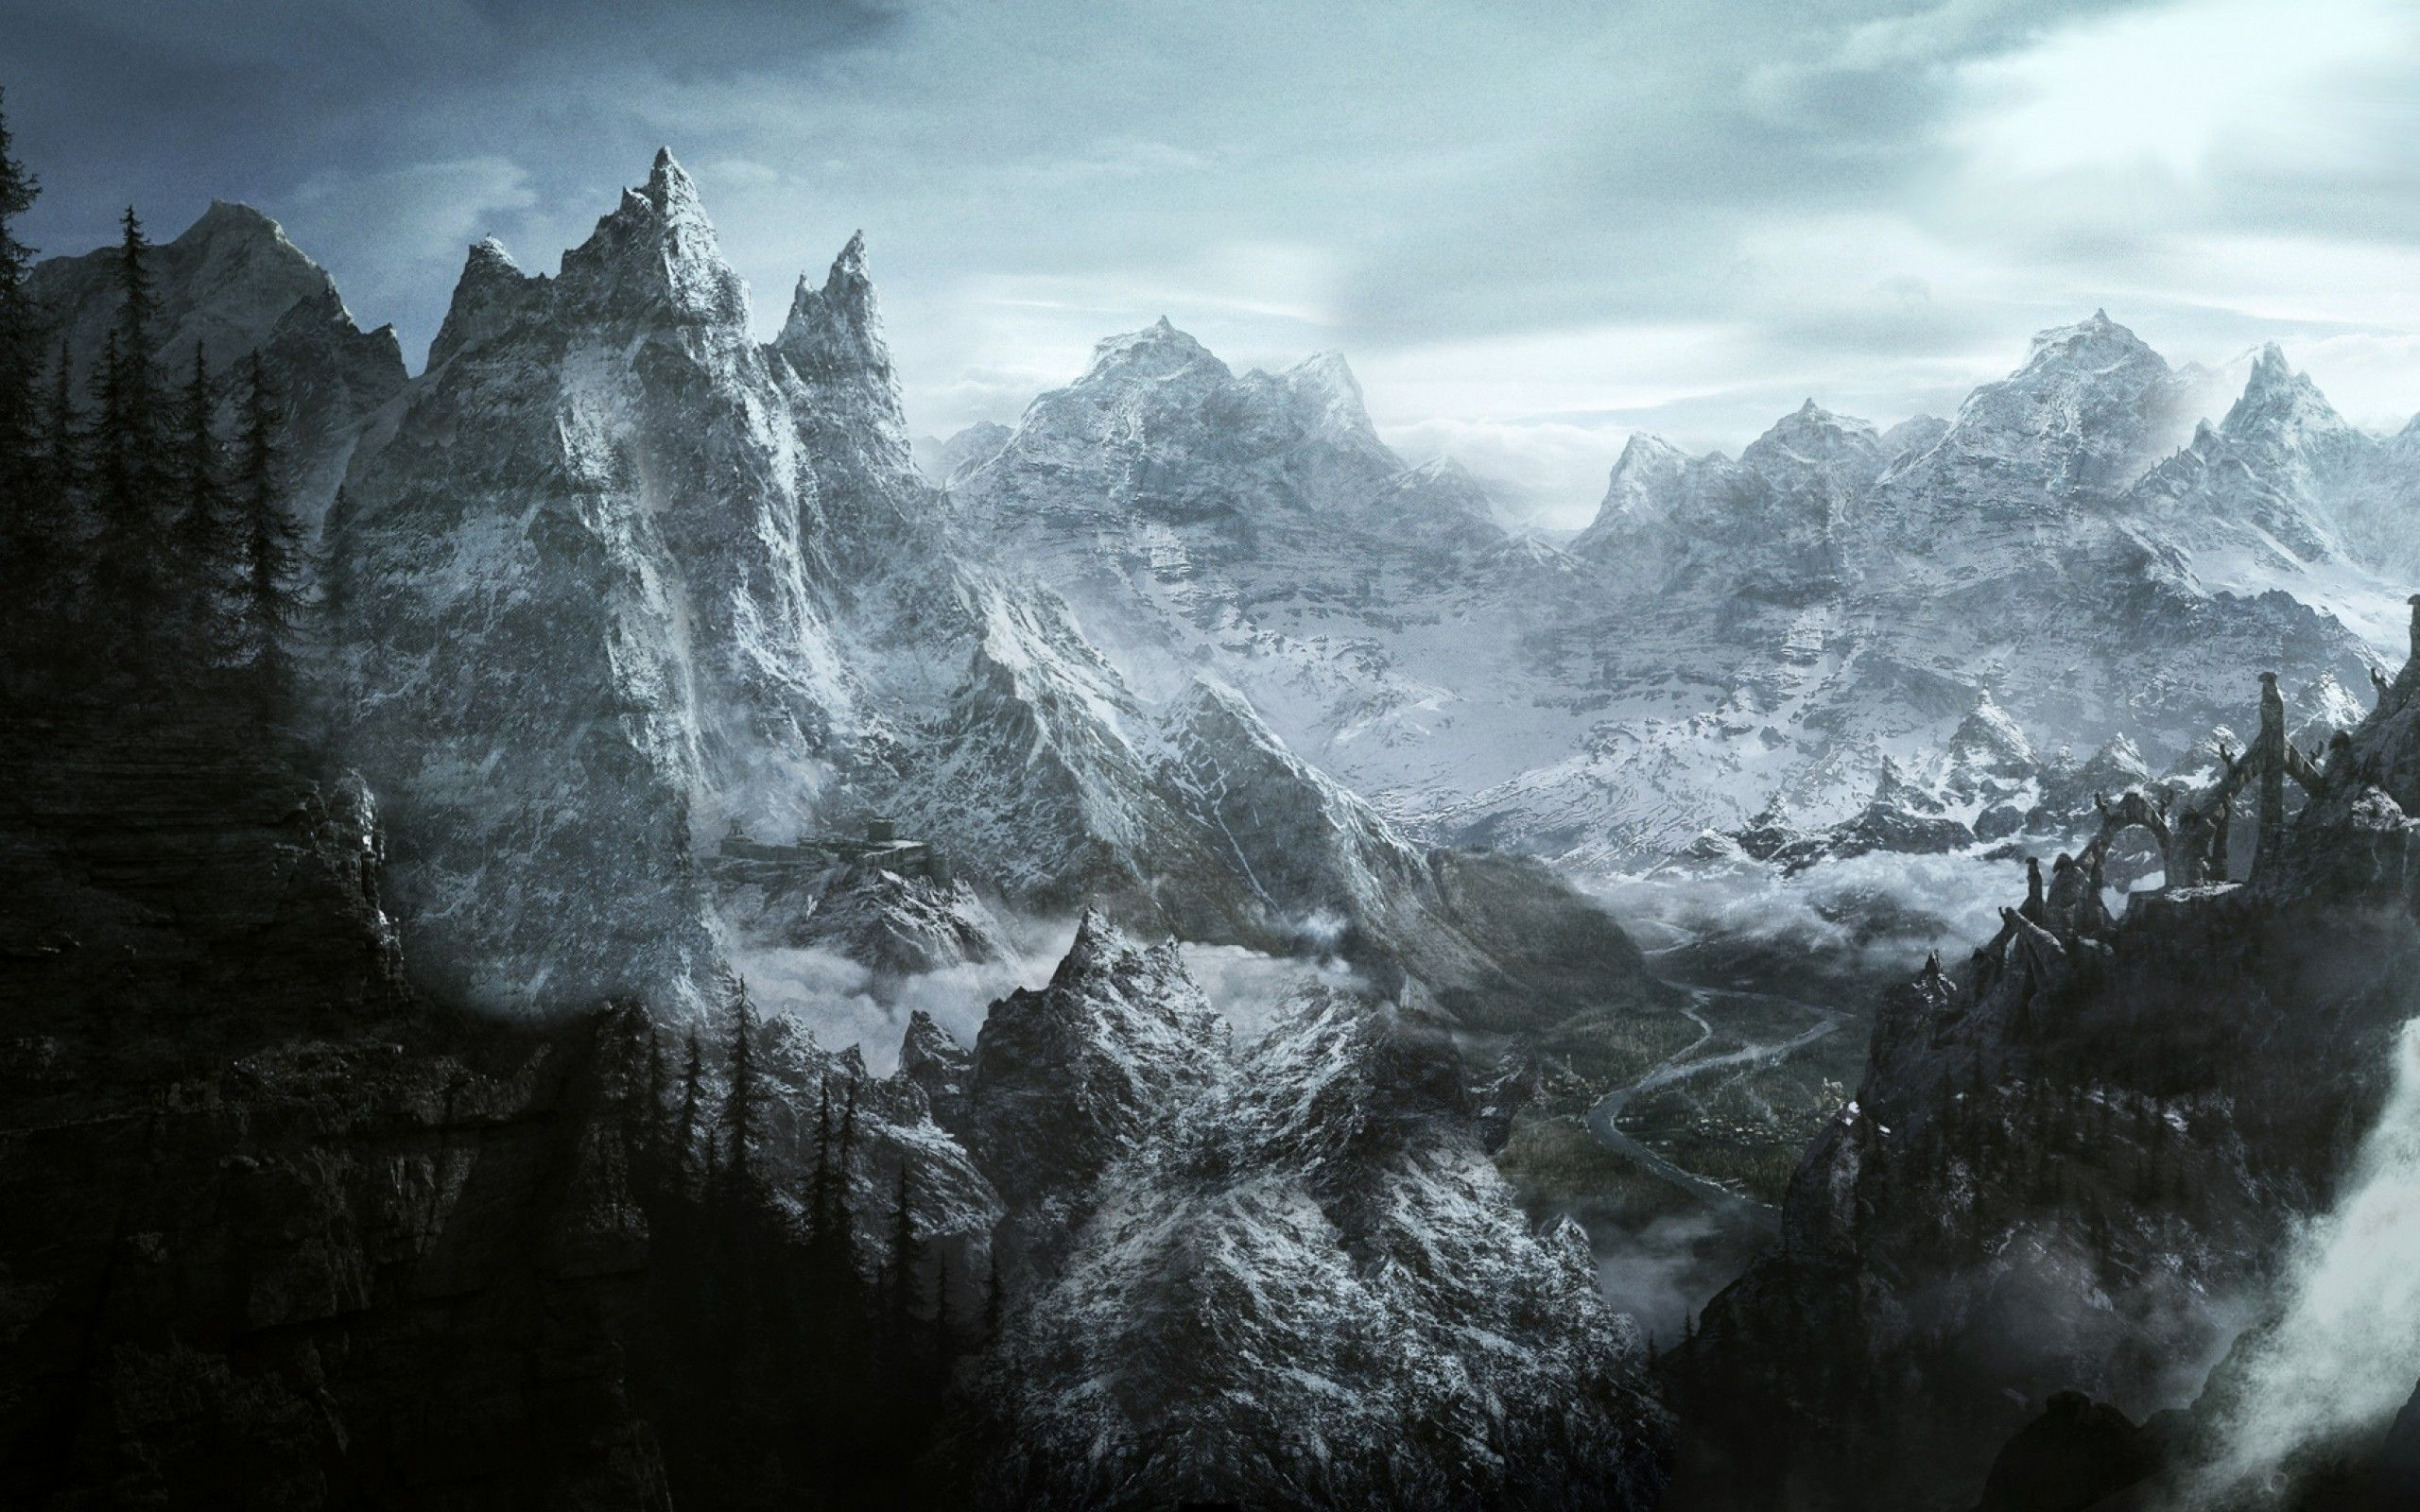 Pin by Olivia on Wallpapers Skyrim wallpaper, Skyrim map